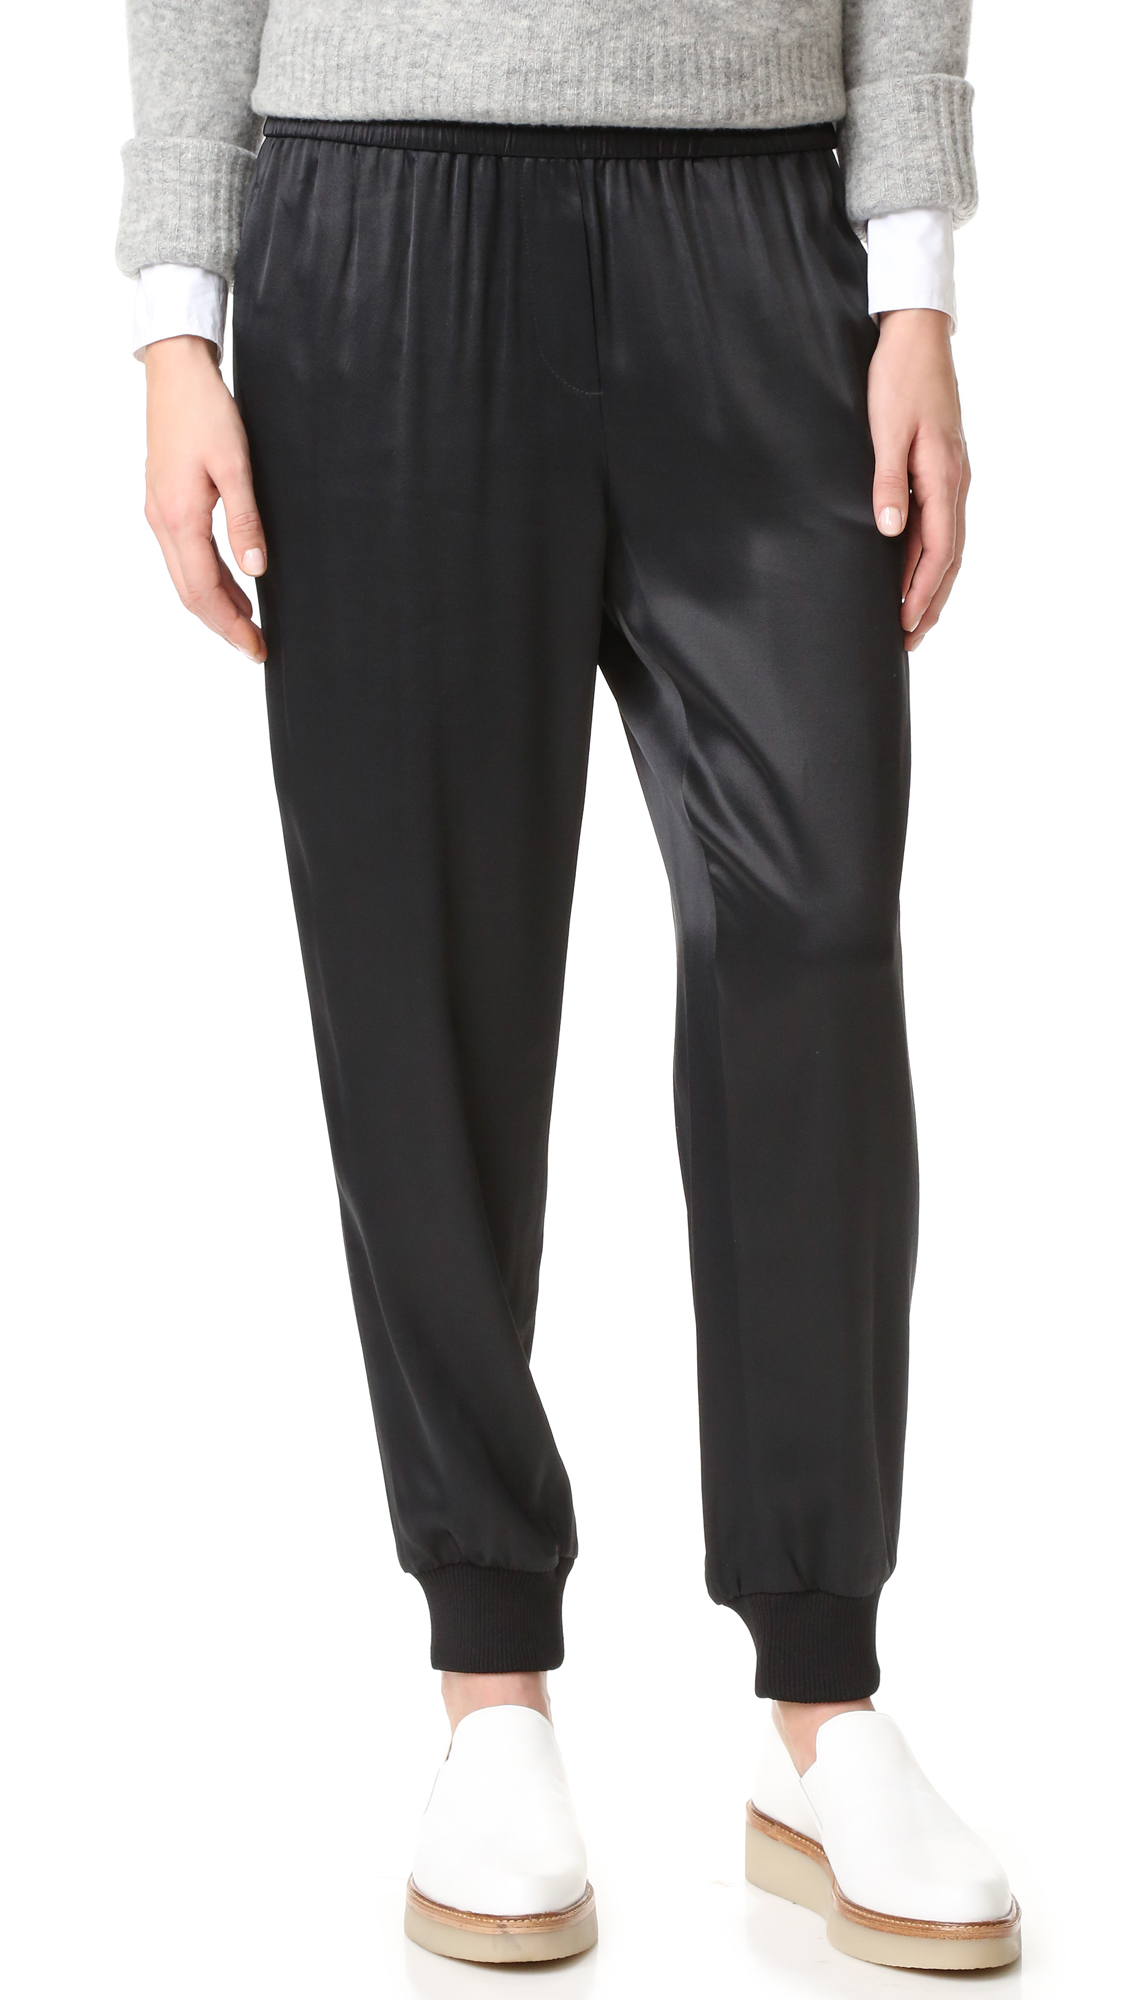 Glossy, pull on DKNY pants styled with a faux fly and ribbed cuffs. Side pockets and welt back pockets. Smocked elastic waistband. Fabric: Technical weave. 100% viscose. Dry clean. Imported, China. Measurements Rise: 11.25in / 28.5cm Inseam: 26.5in / 67